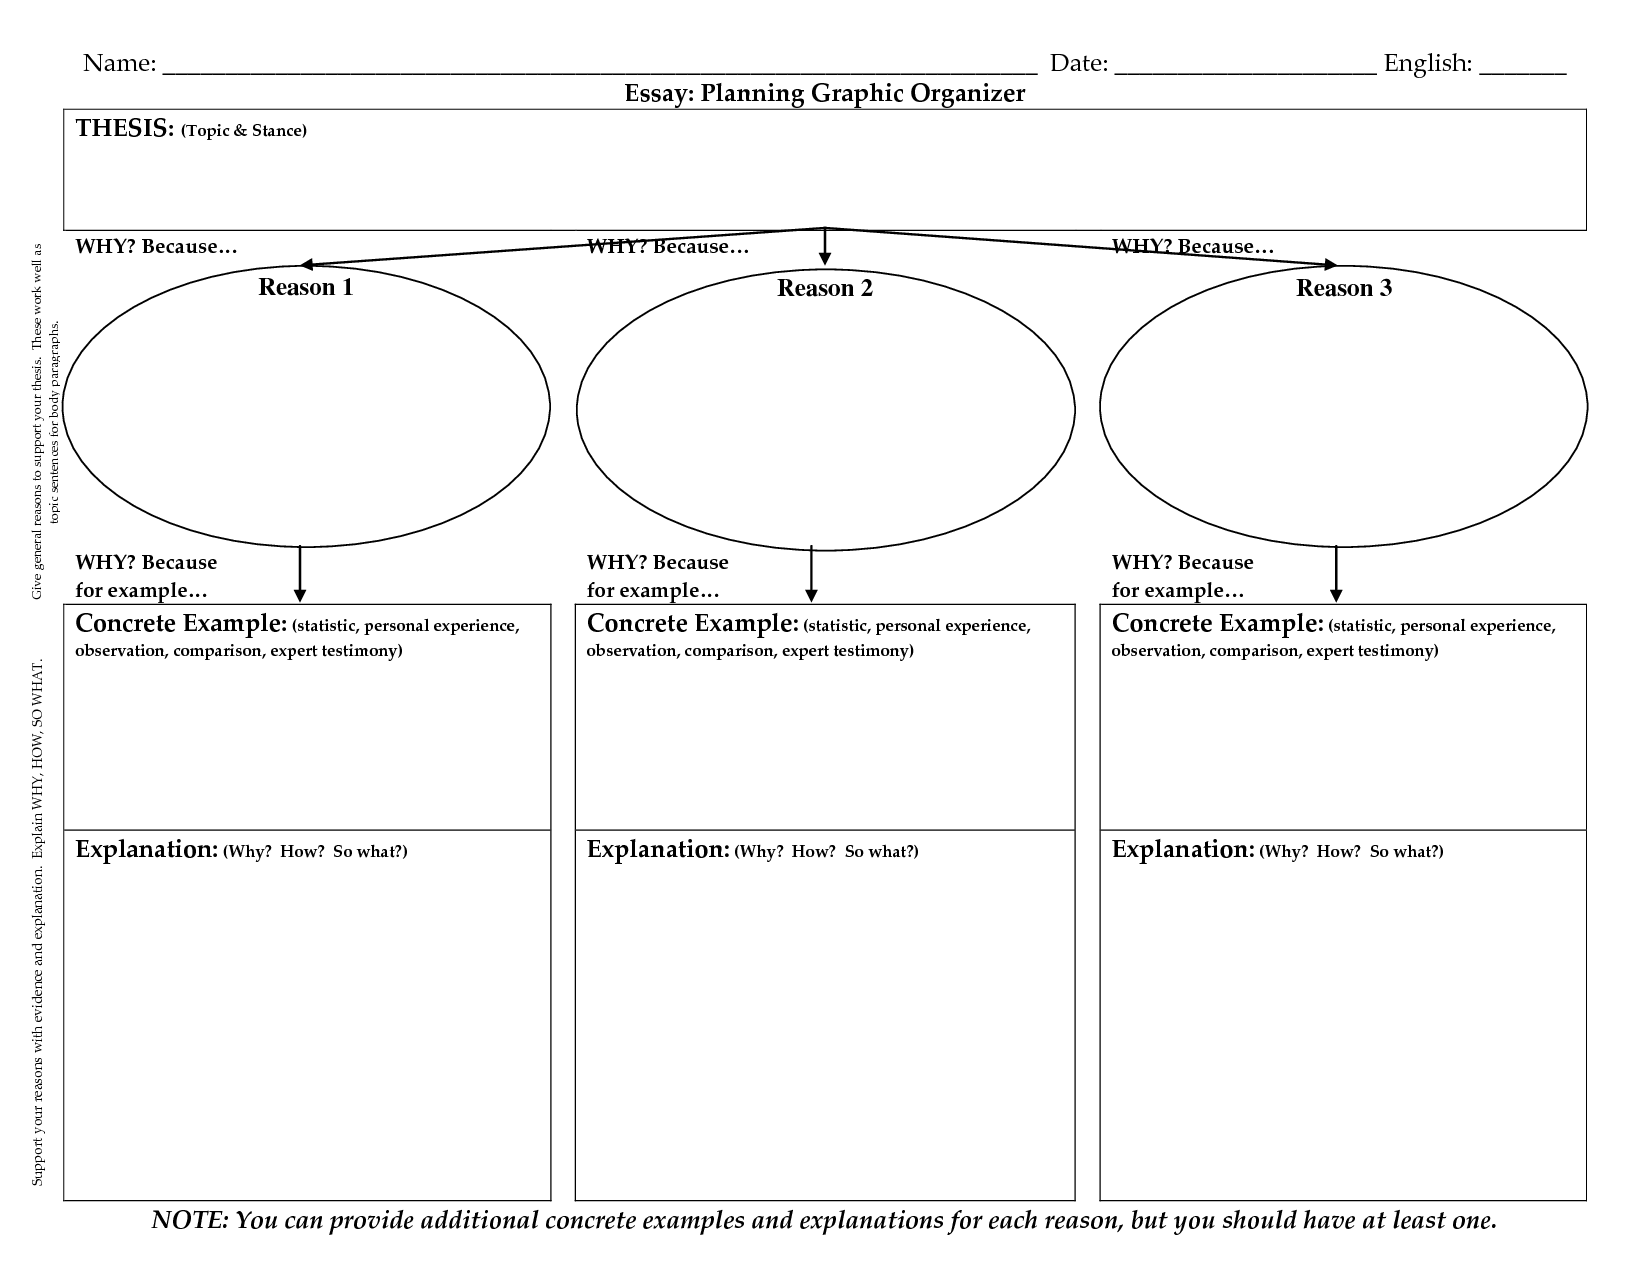 academic criticism graphic organizer essay Use this page of the graphic organizer to plan what your overall essay will be  about (your claim) and what reasons you have to show that your claim is true.